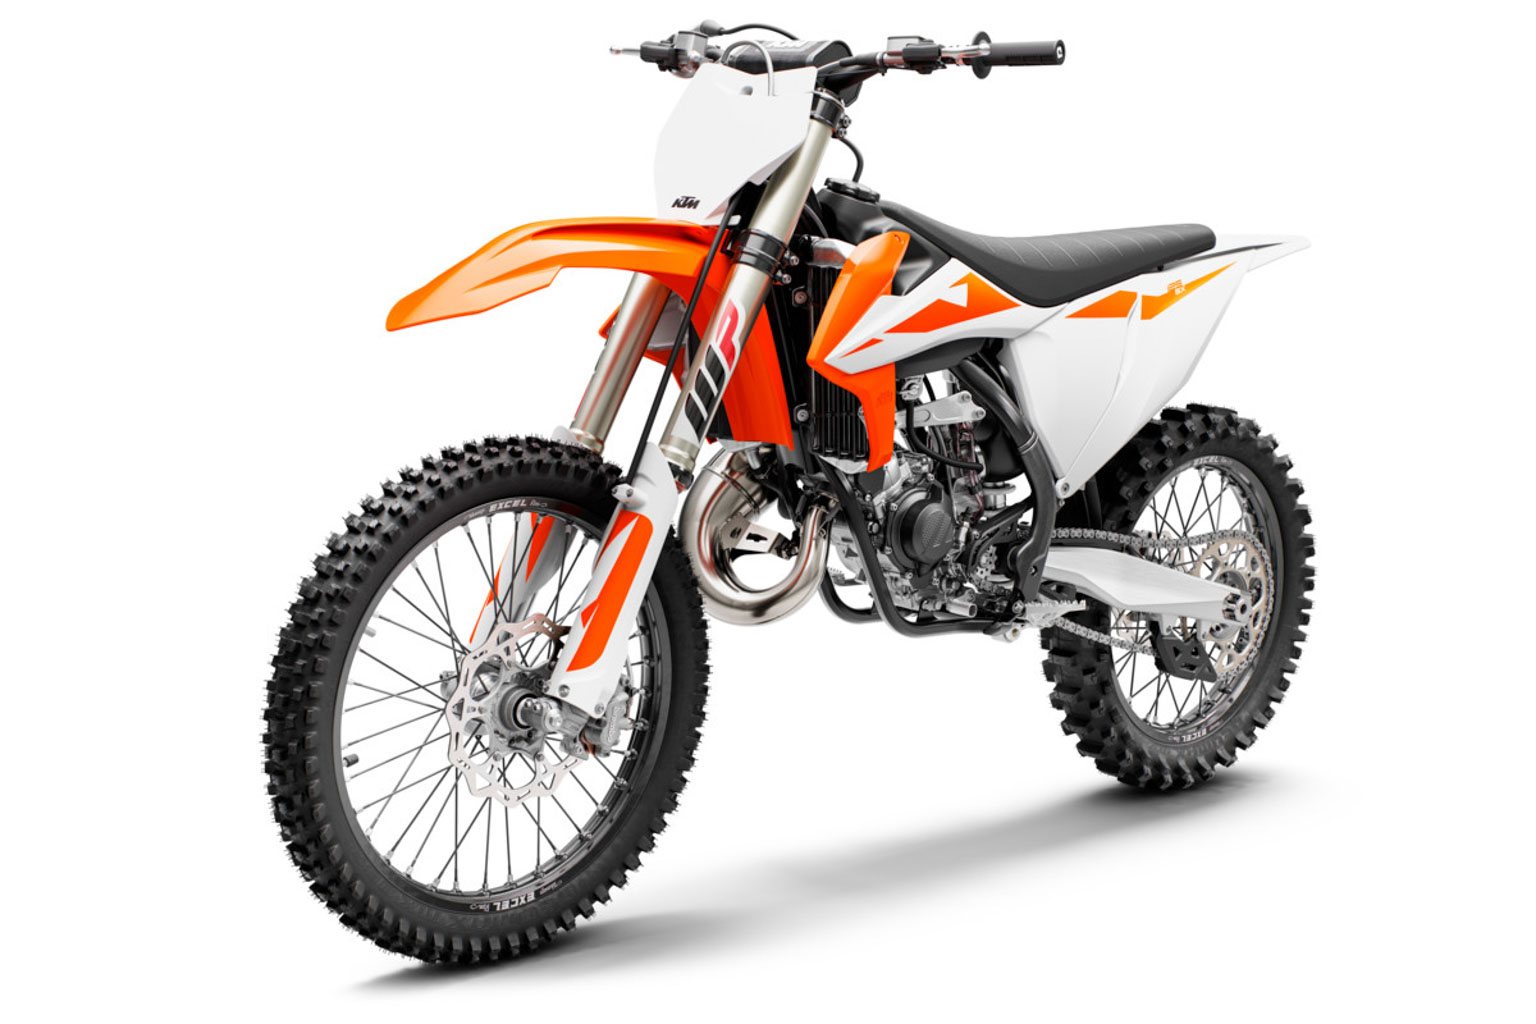 Whats new on ktms 2019 two strokes motohead whats new on ktms 2019 two strokes ccuart Gallery